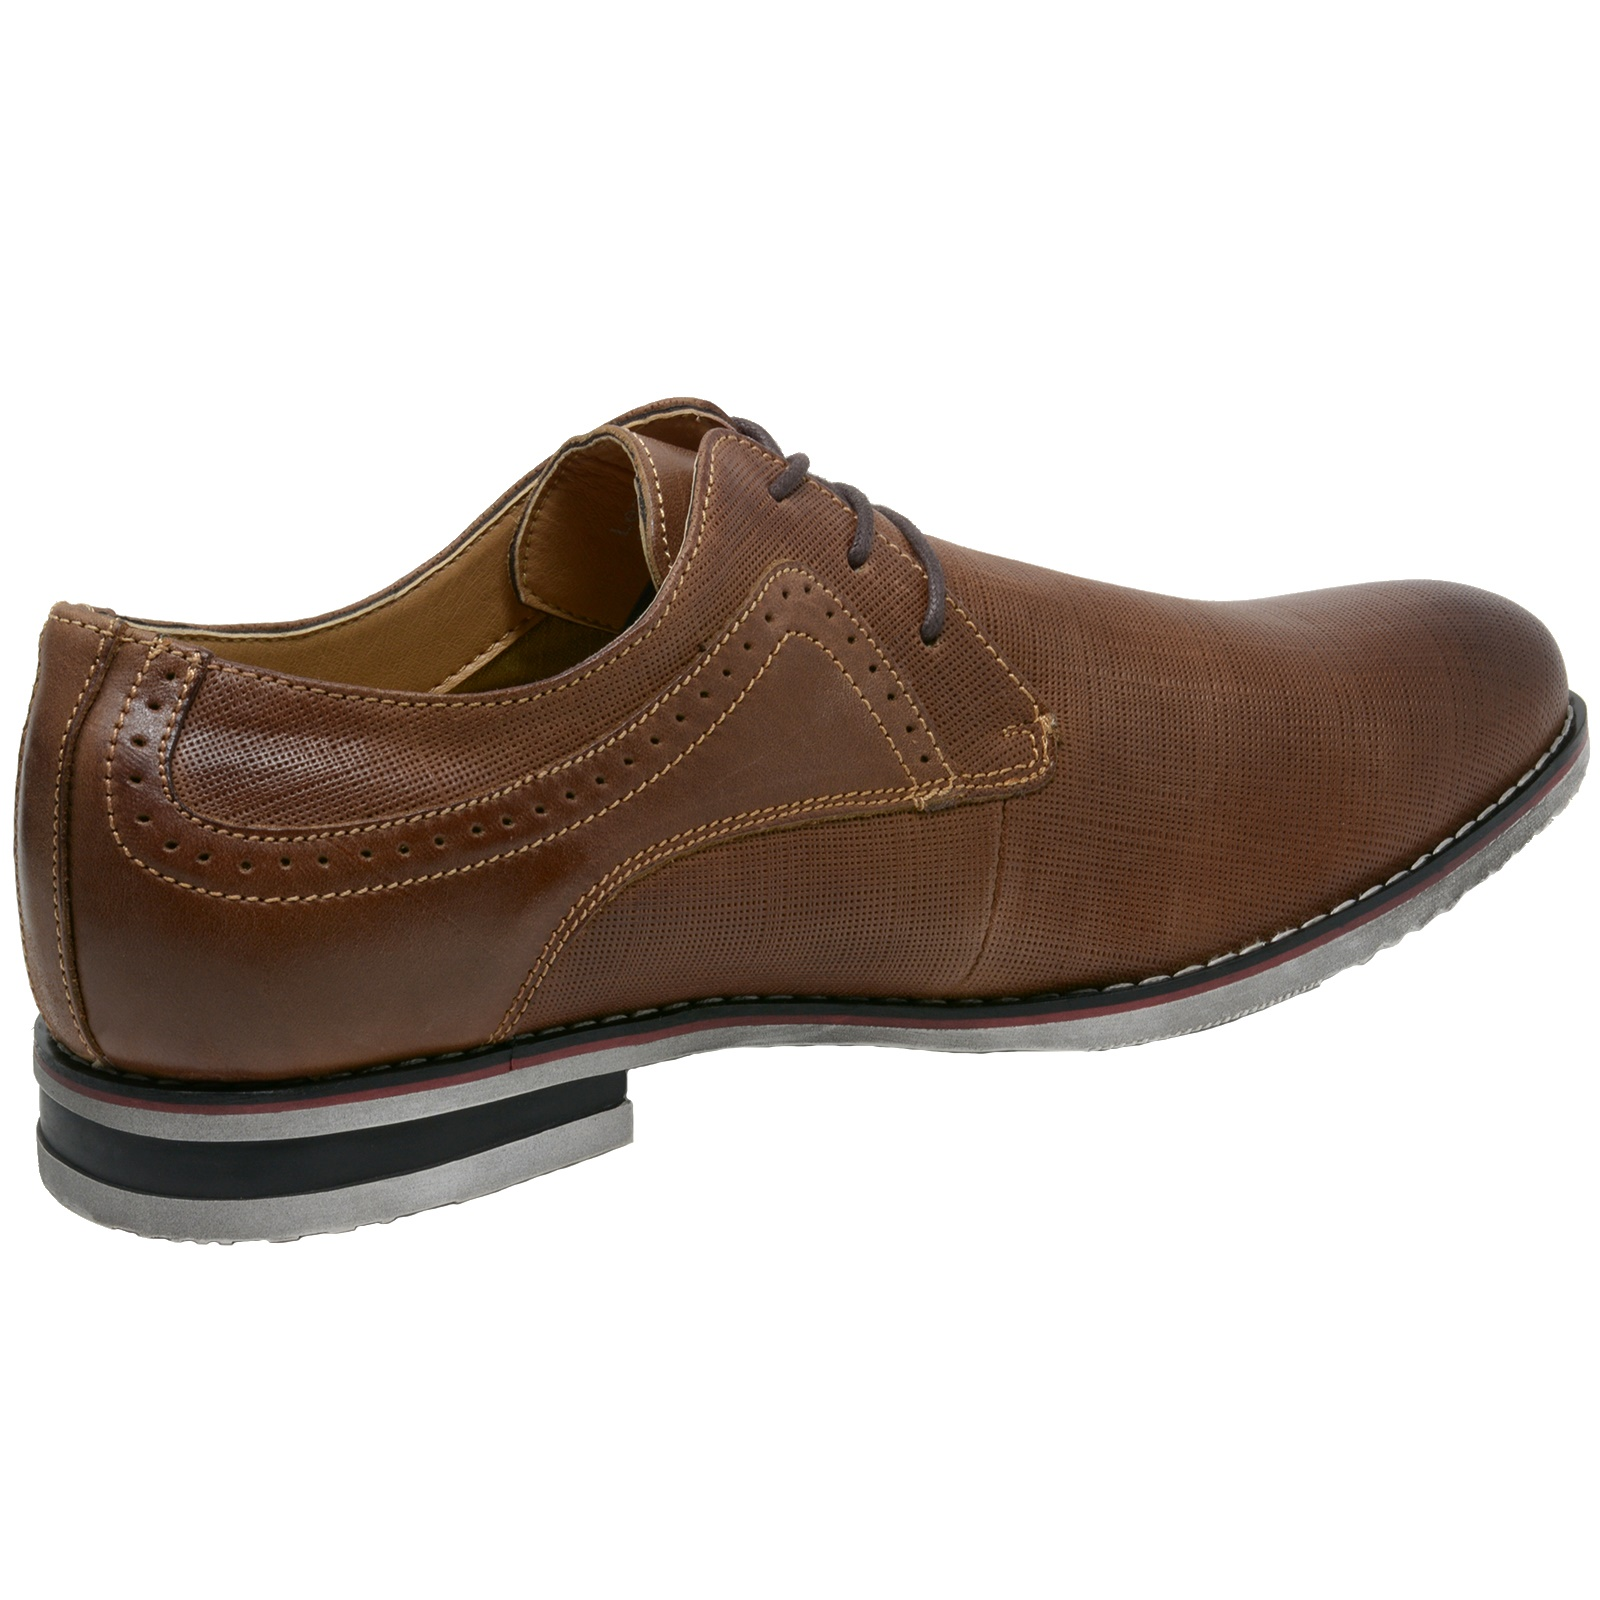 Double-Diamond-by-Alpine-Swiss-Mens-Saffiano-Leather-Lace-Up-Oxford-Dress-Shoes thumbnail 23